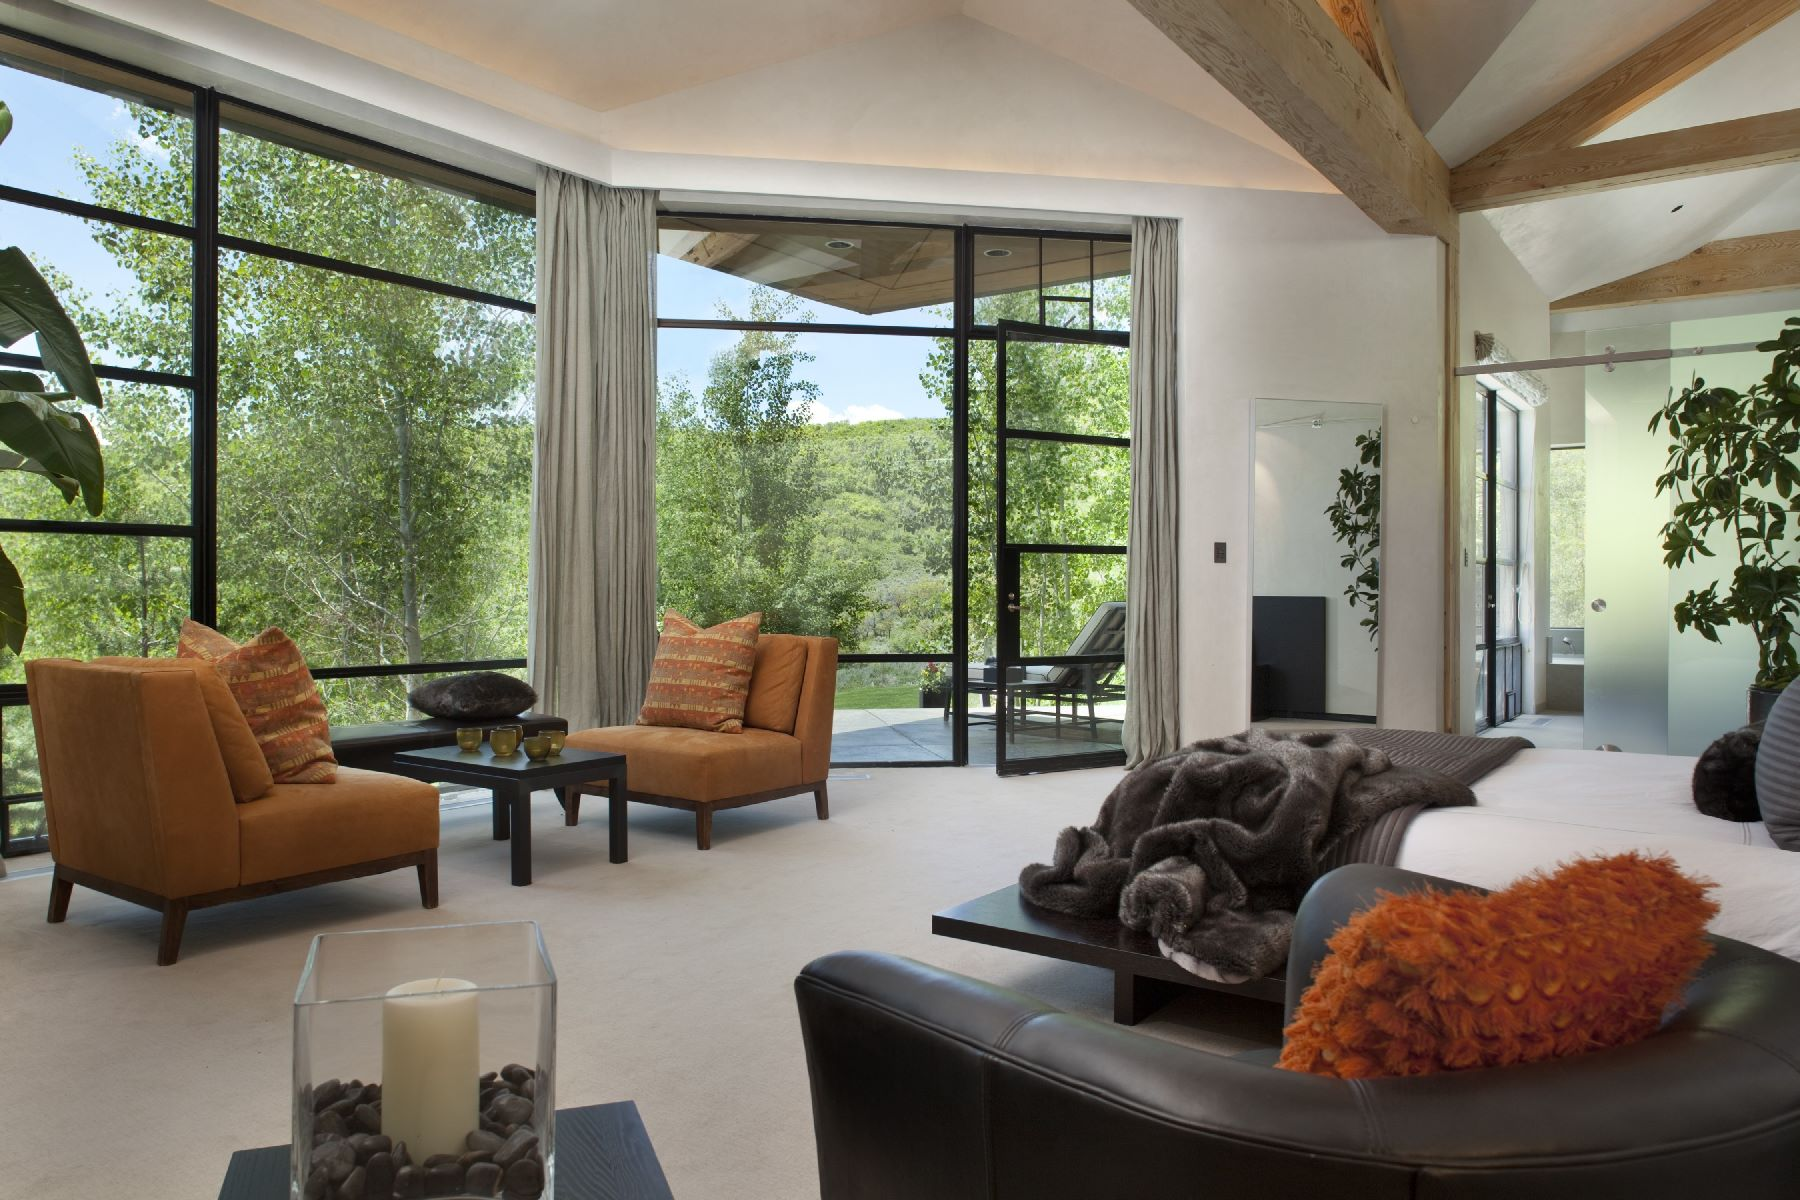 Additional photo for property listing at 412 Pioneer Springs Ranch 412 Pioneer Springs Ranch Road Aspen, Colorado 81611 United States